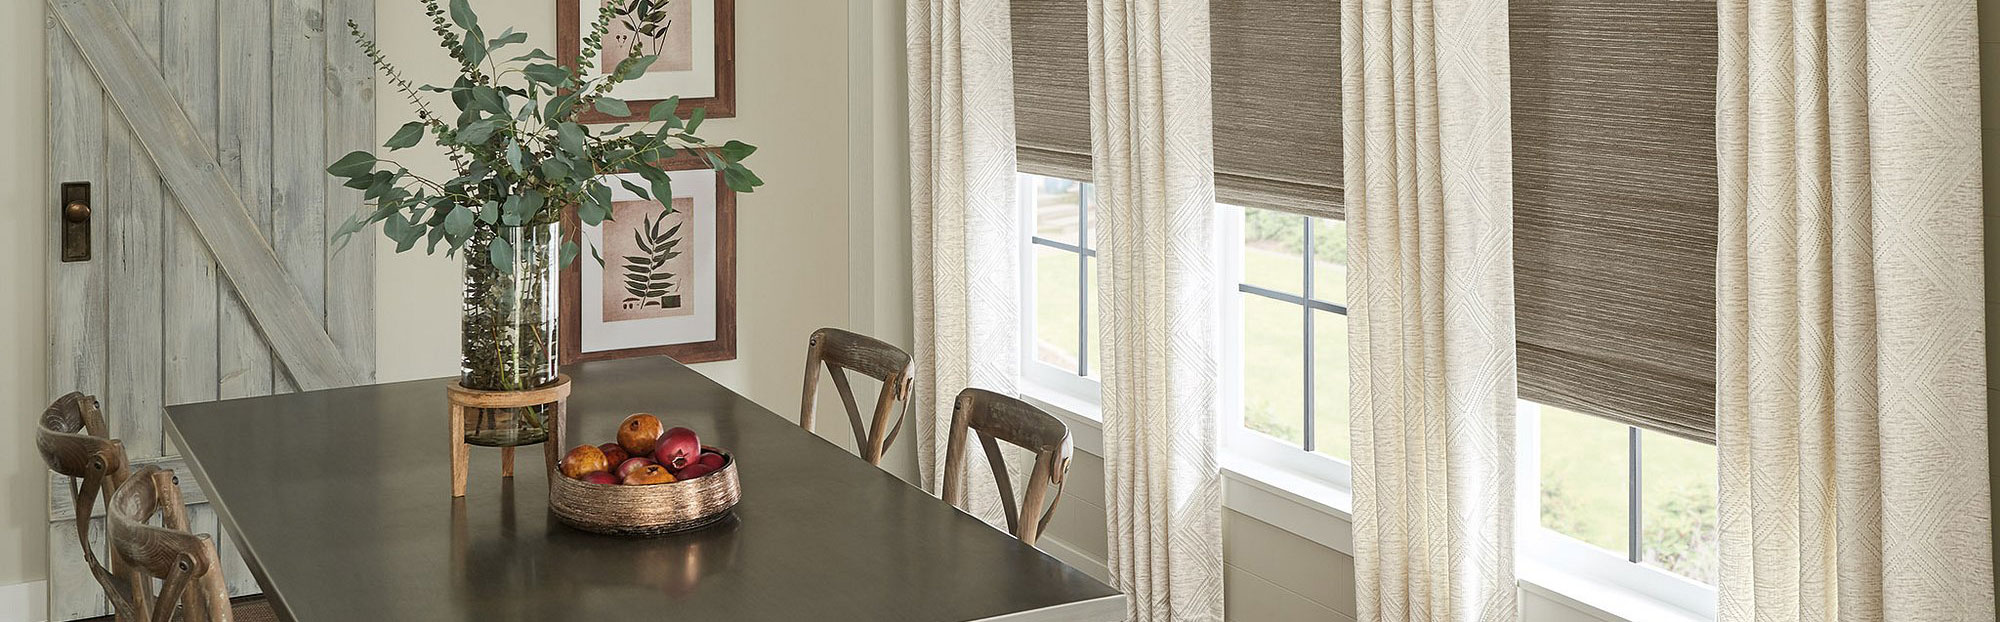 Window Treatments in Kitchen